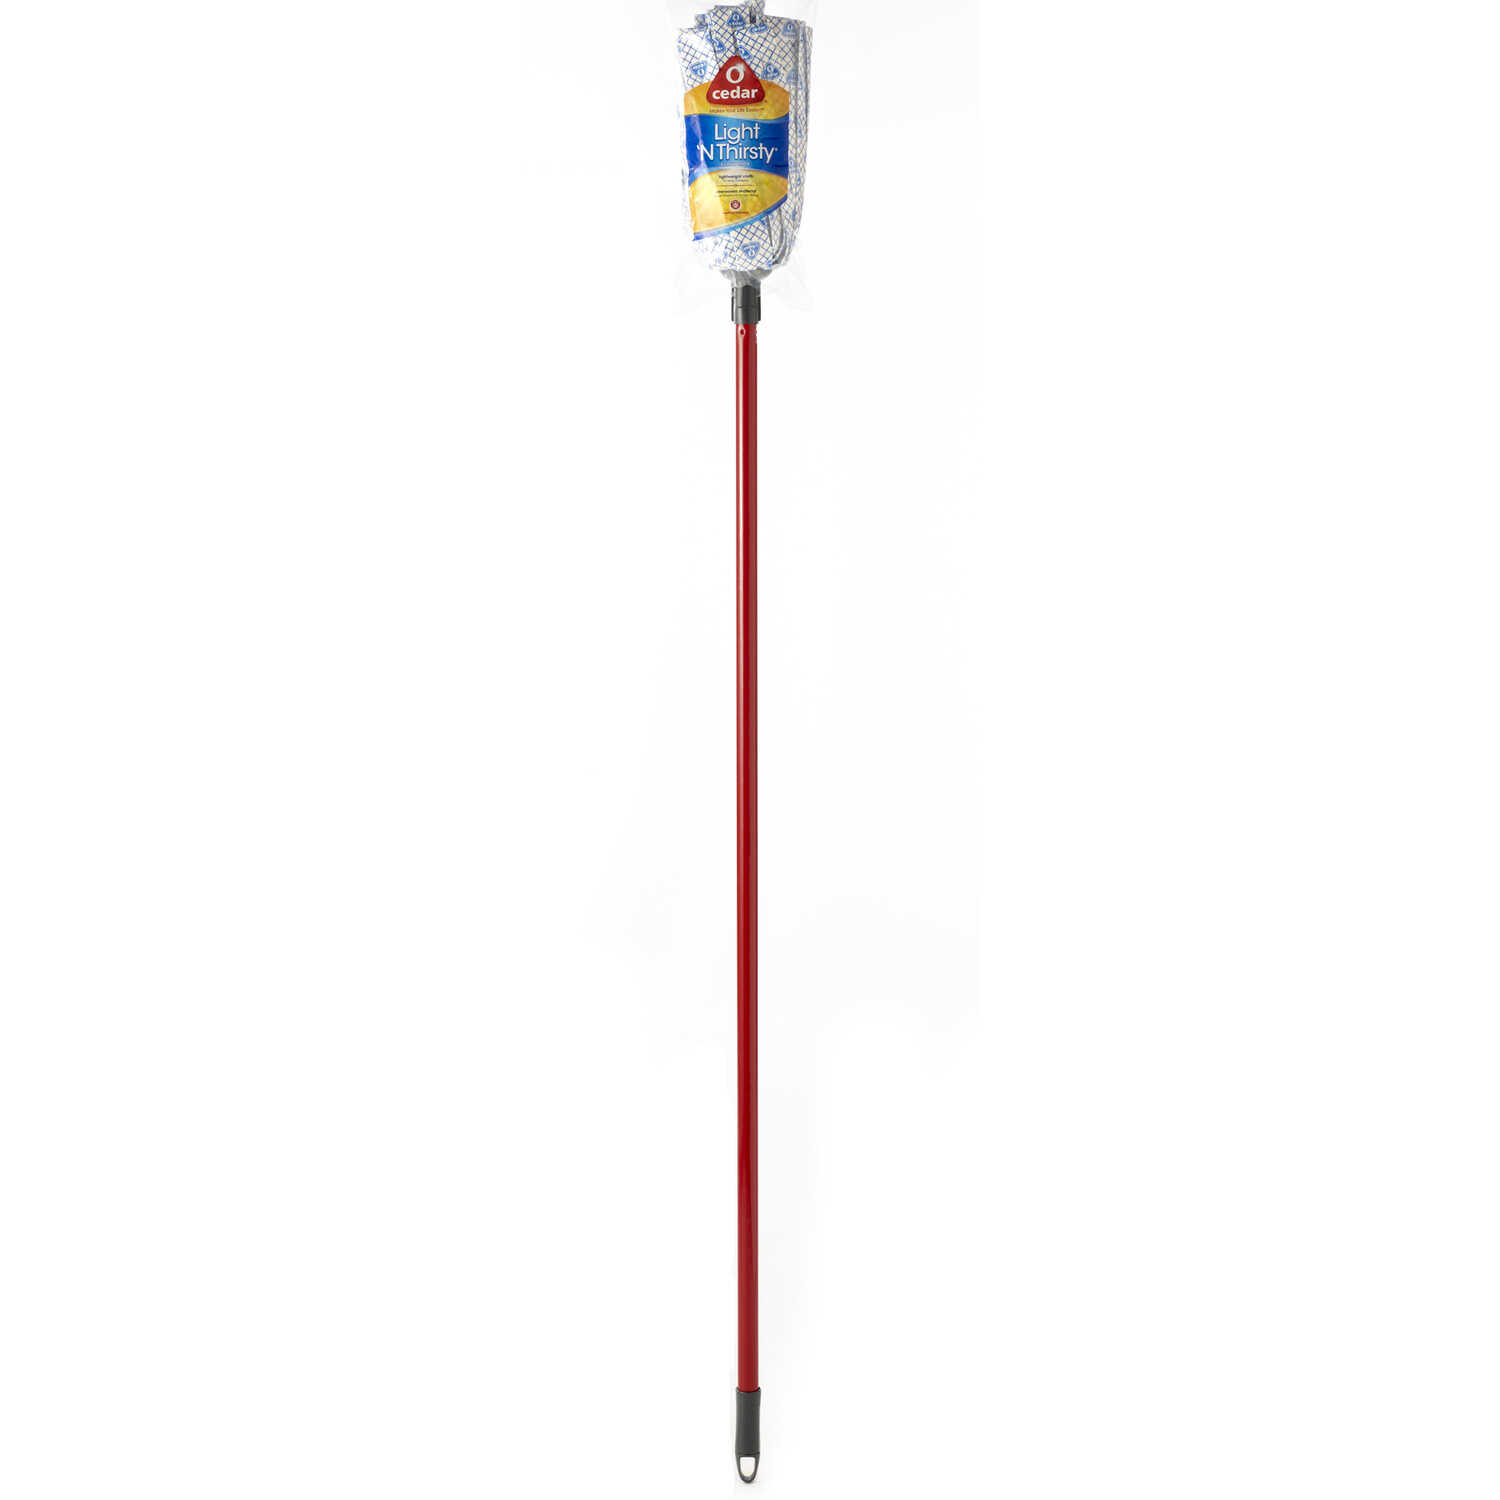 O-Cedar  Light 'N Thirsty  9 in. W Wet  Mop